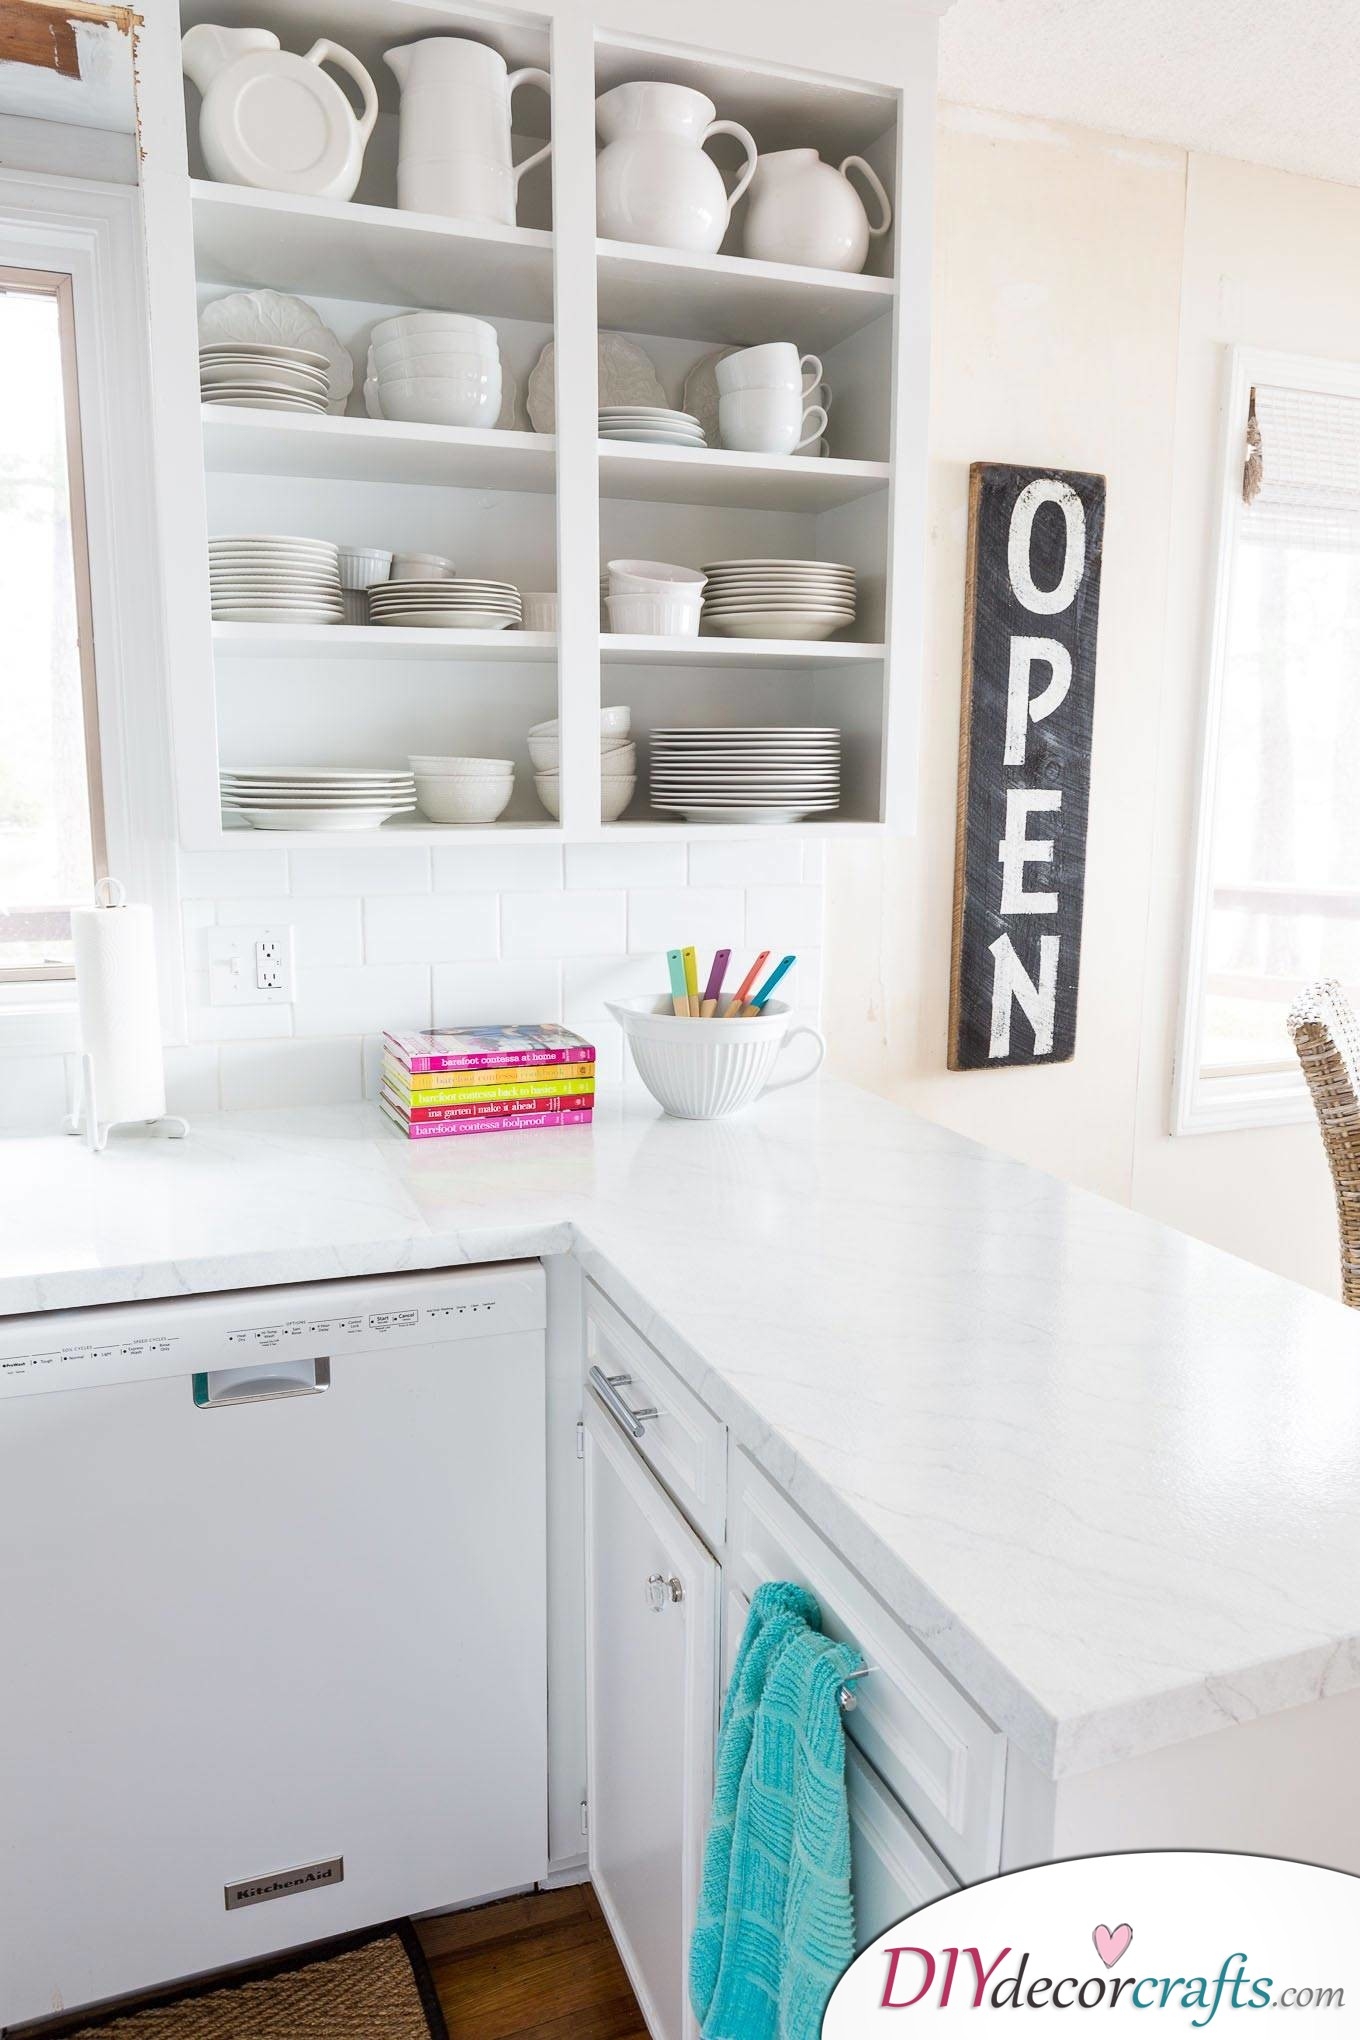 10 Simple Yet Amazing DIY Kitchen Countertop Ideas That Will Blow You Away, Painting Countertop To Make It Look Like Carrara Marble